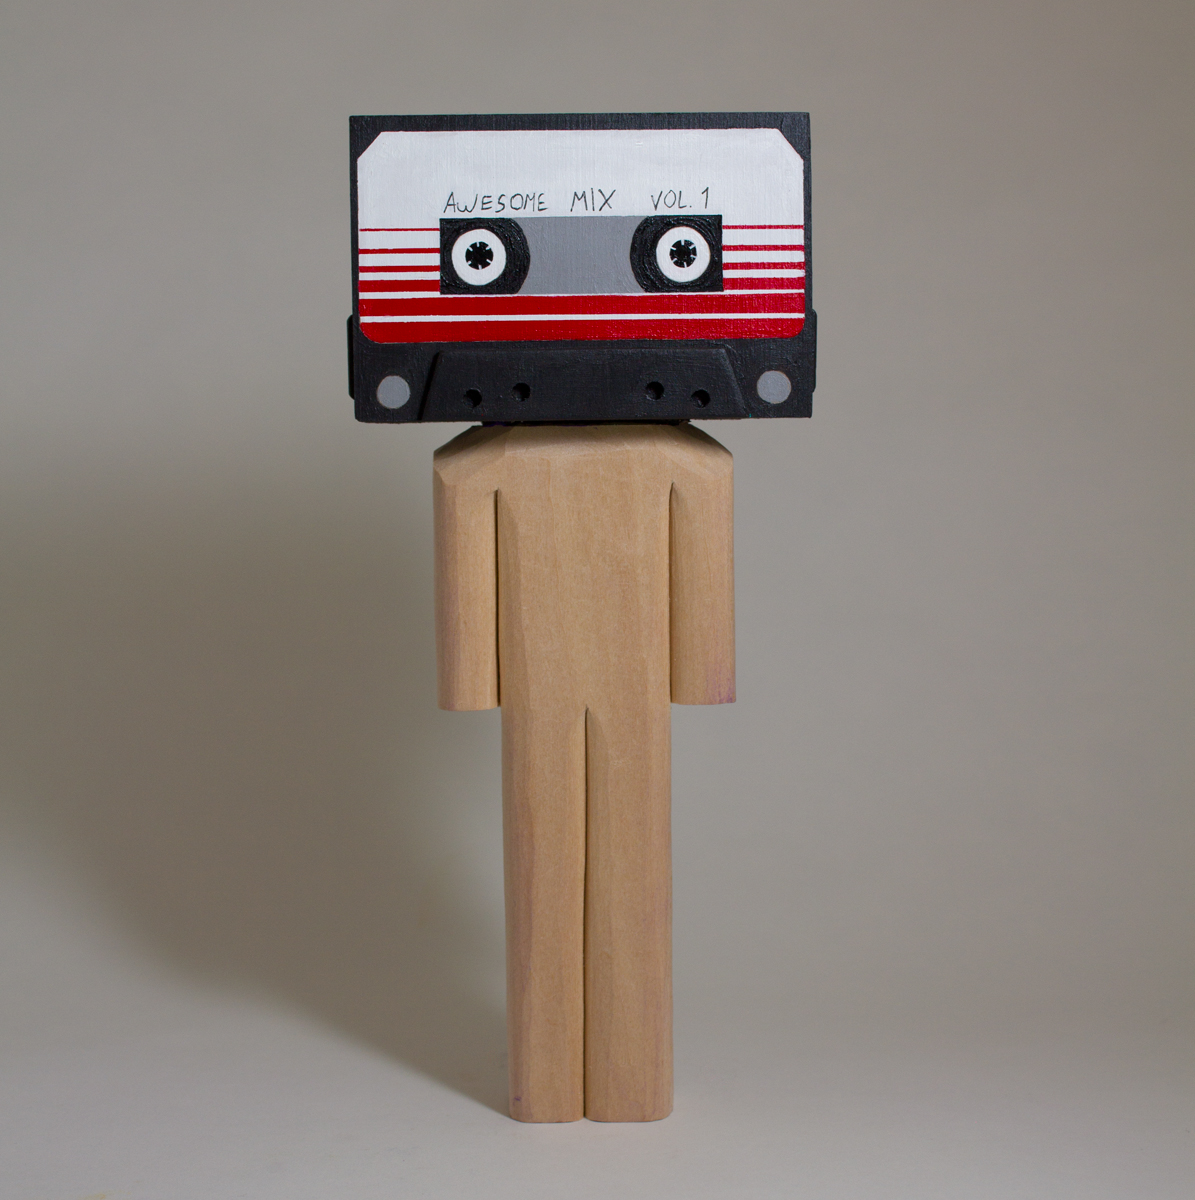 Awesome Mix Vol 1    basswood and acrylic  3.8 x 1.75 x 8.5 inches  CSK 038G